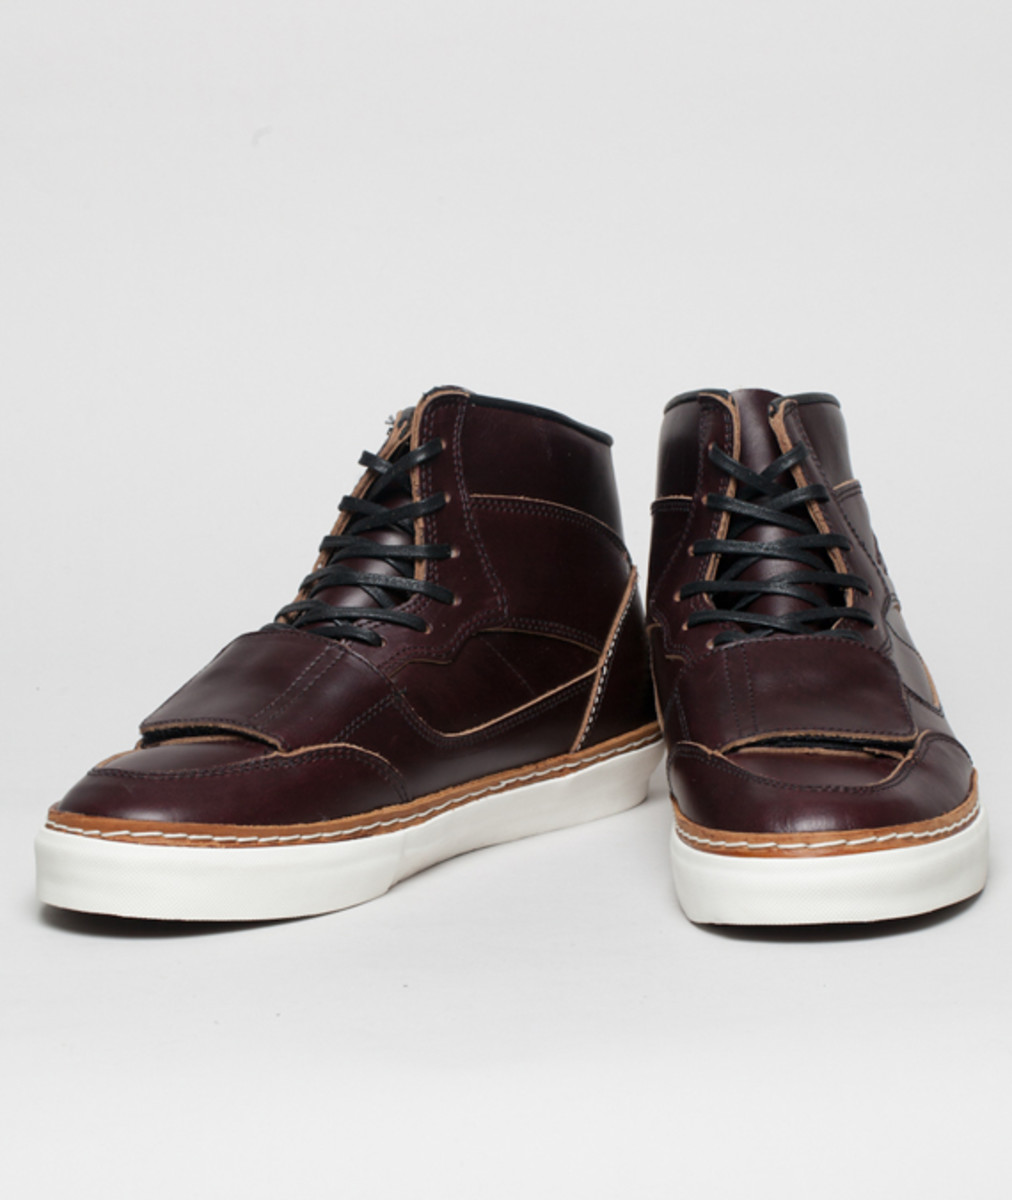 horween-leather-vans-mt-edition-decon-lx-03